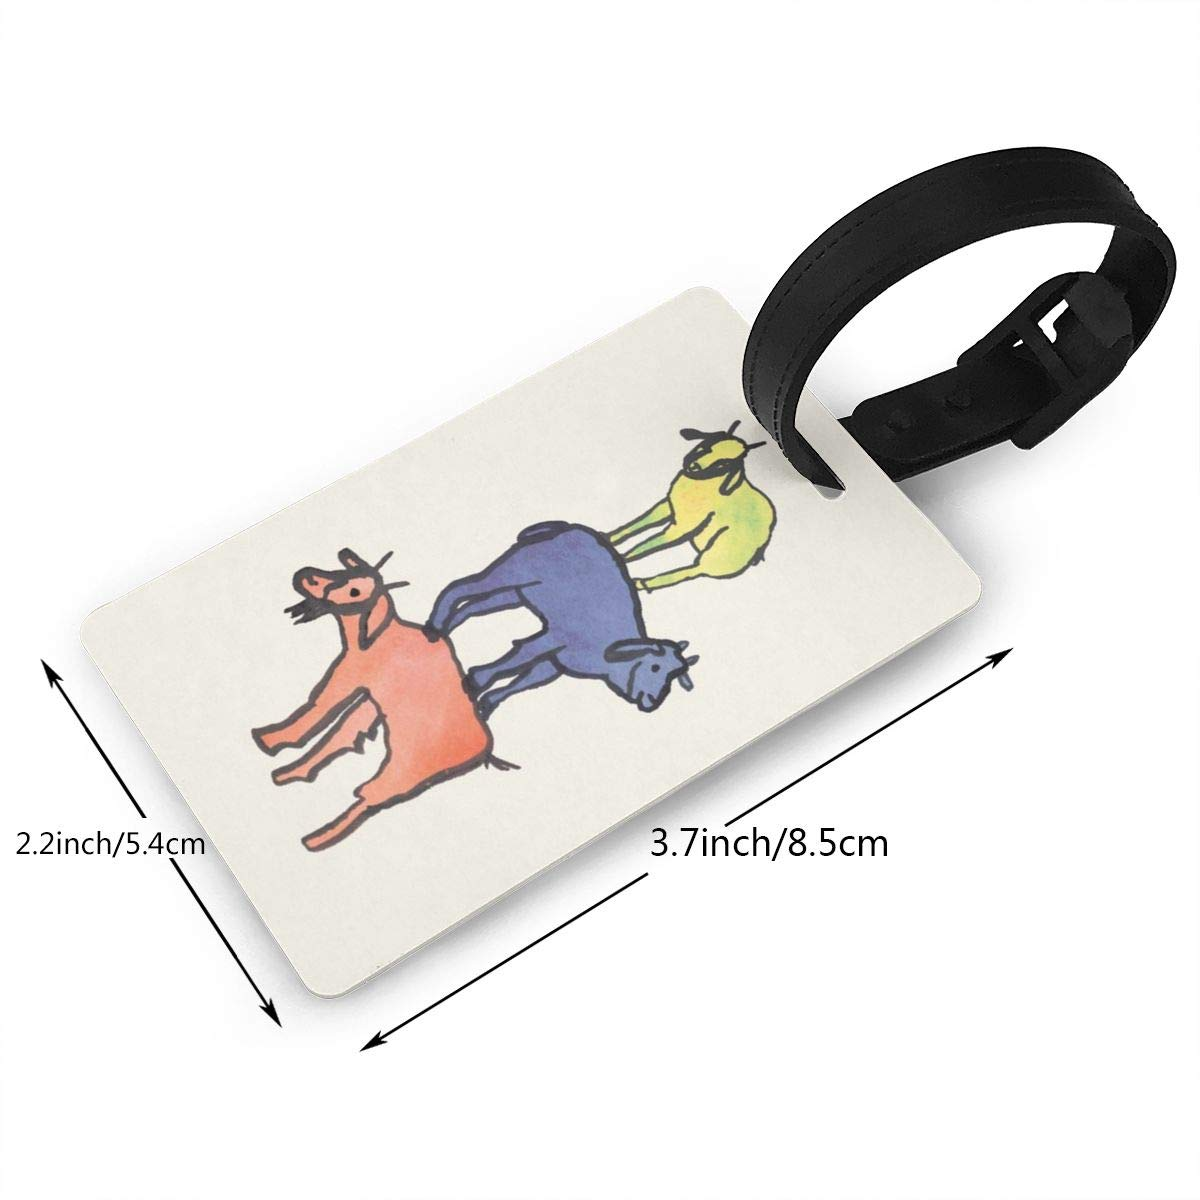 billy goats up Luggage Tags Suitcase Labels Bag Travel Accessories Set of 2